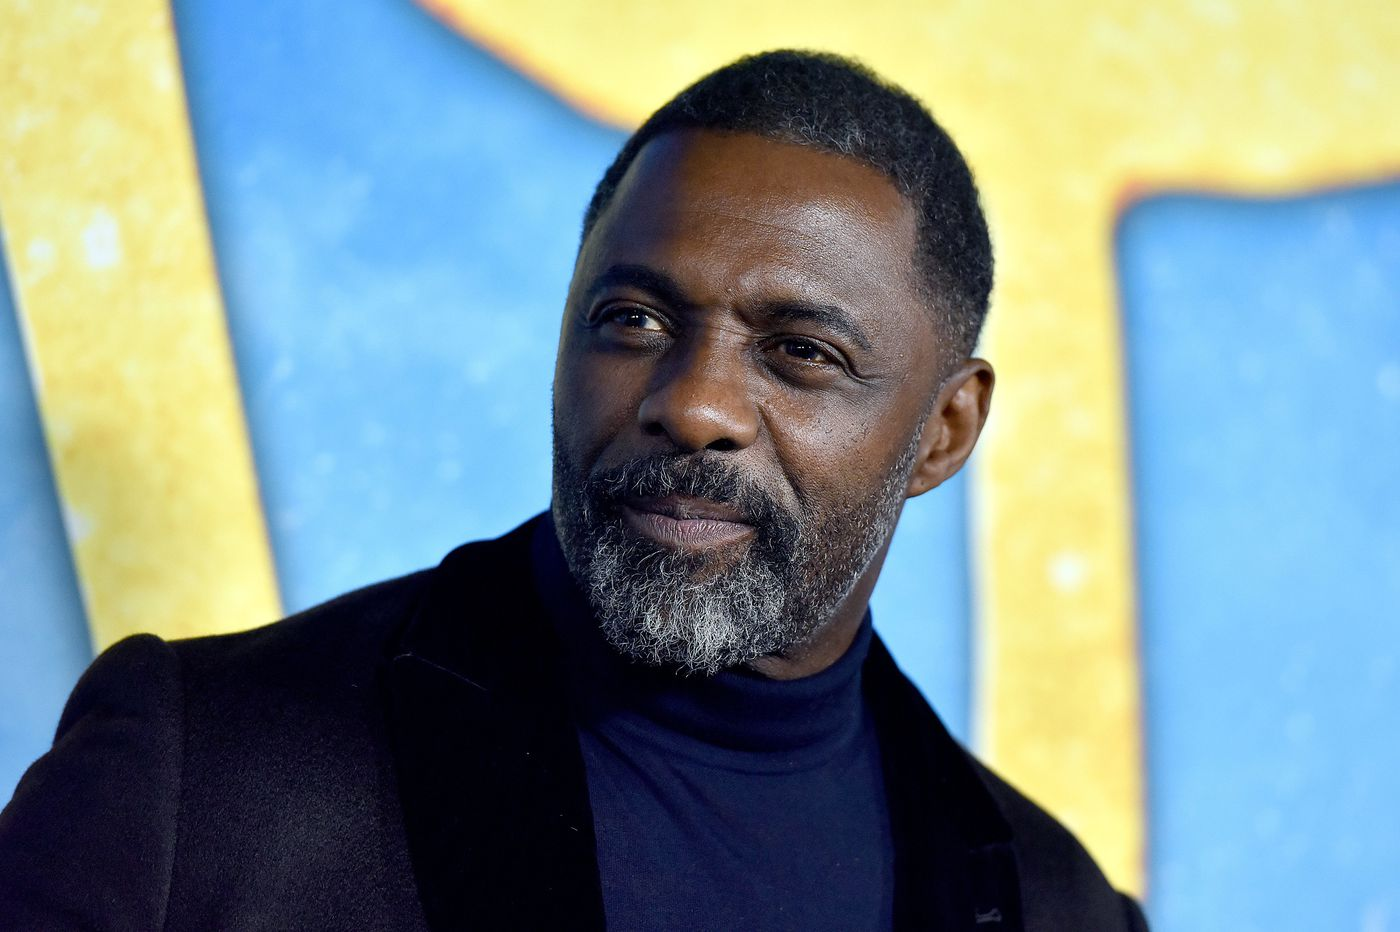 Idris Elba says he's tested positive for coronavirus